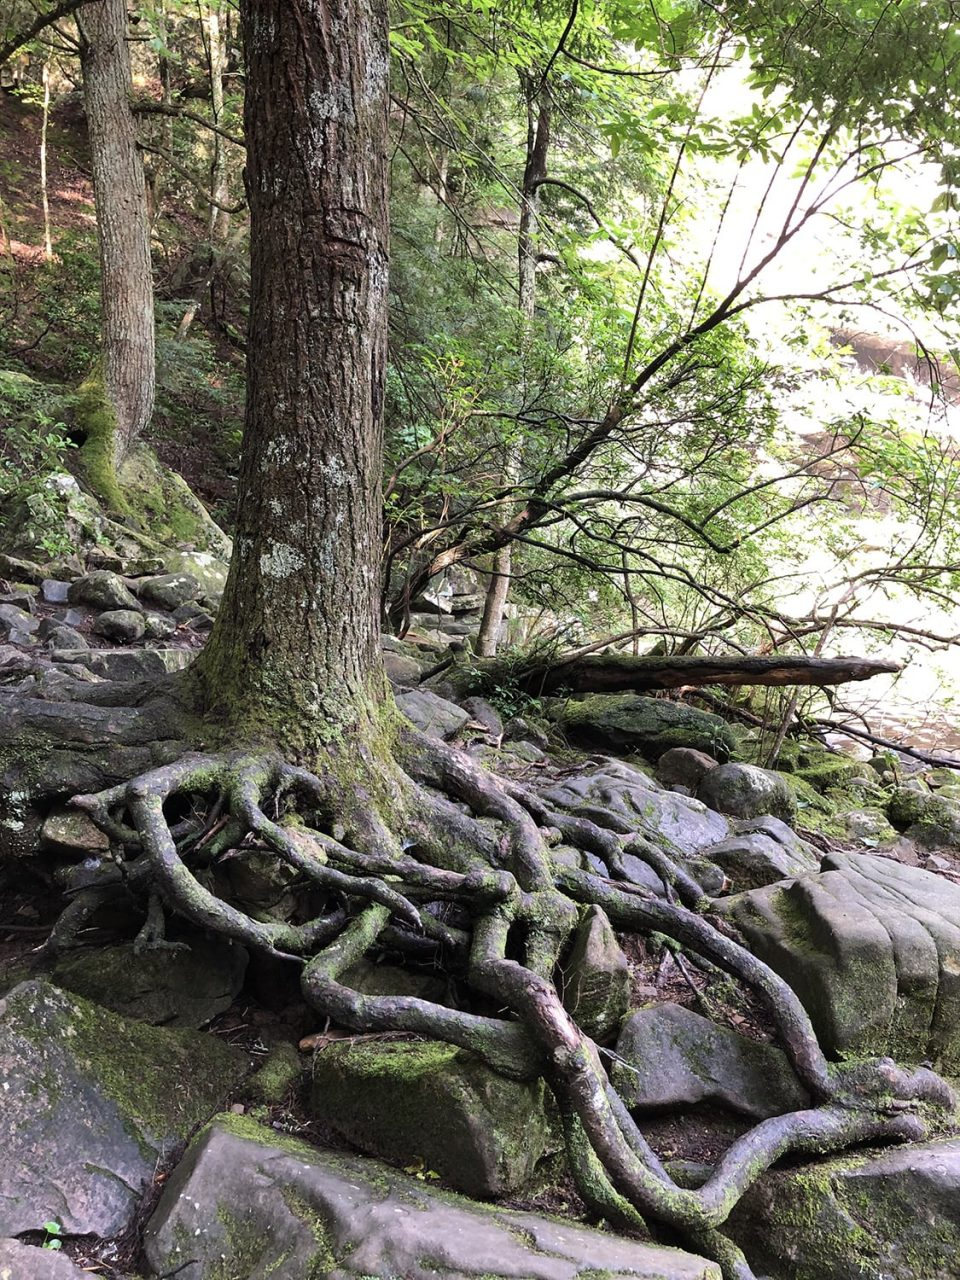 Photograph of twisted tree roots at the base of the waterfall.